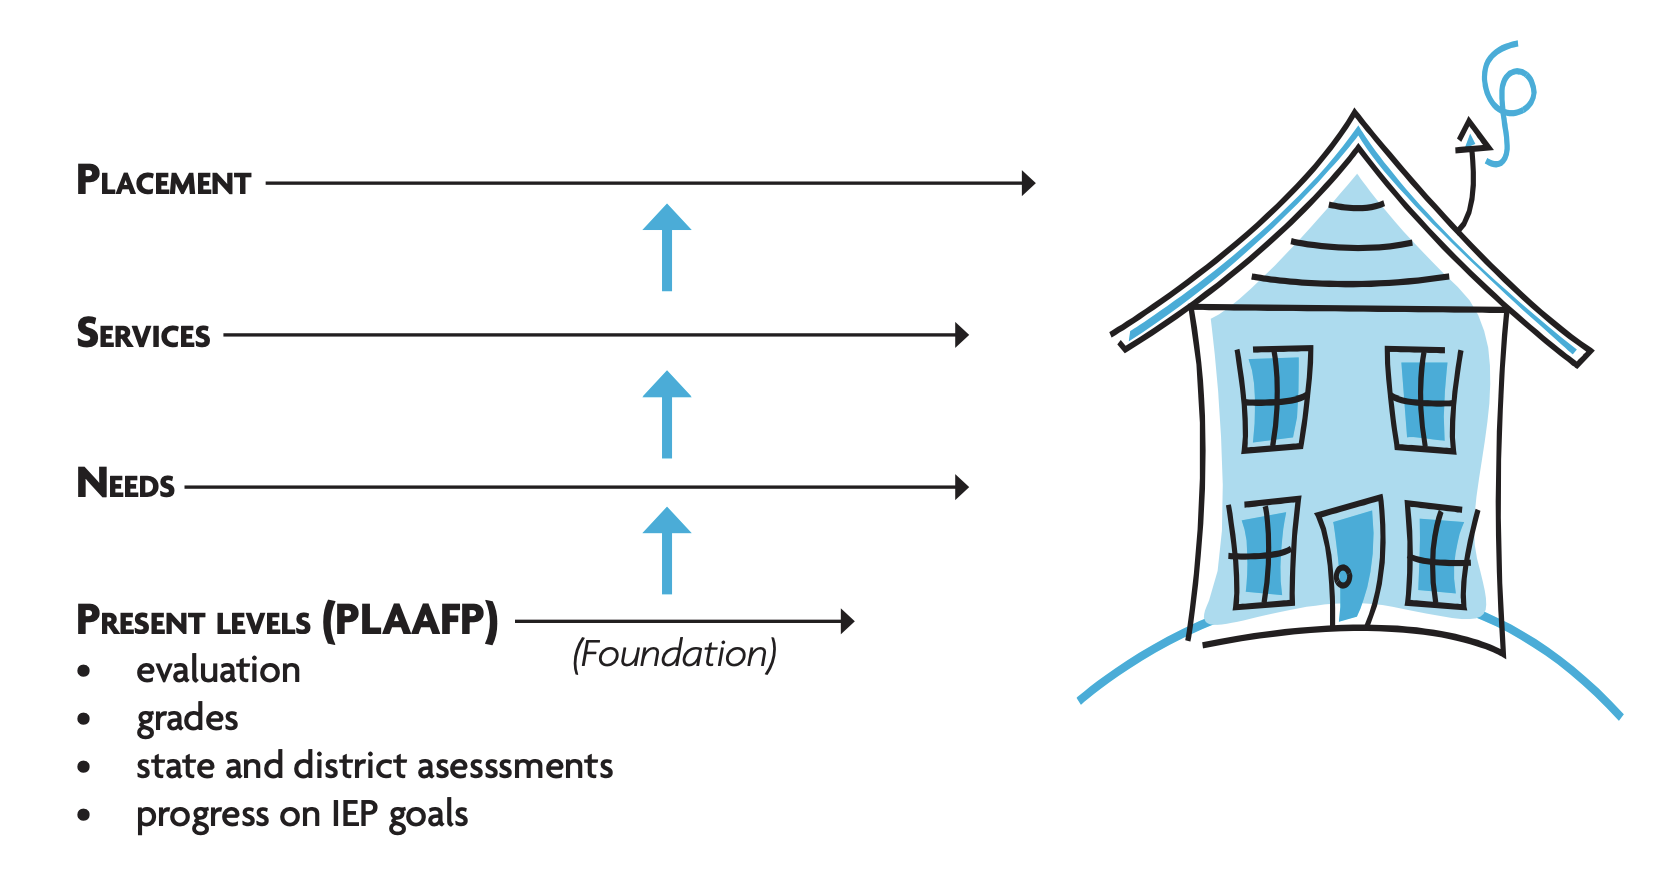 Image is a visualization of the house analogy. On the right is an illustration of a simple house, and on the left are labels of Present Levels PLAAFP (foundation), Needs (first floor), services (second floor), and placement (roof).